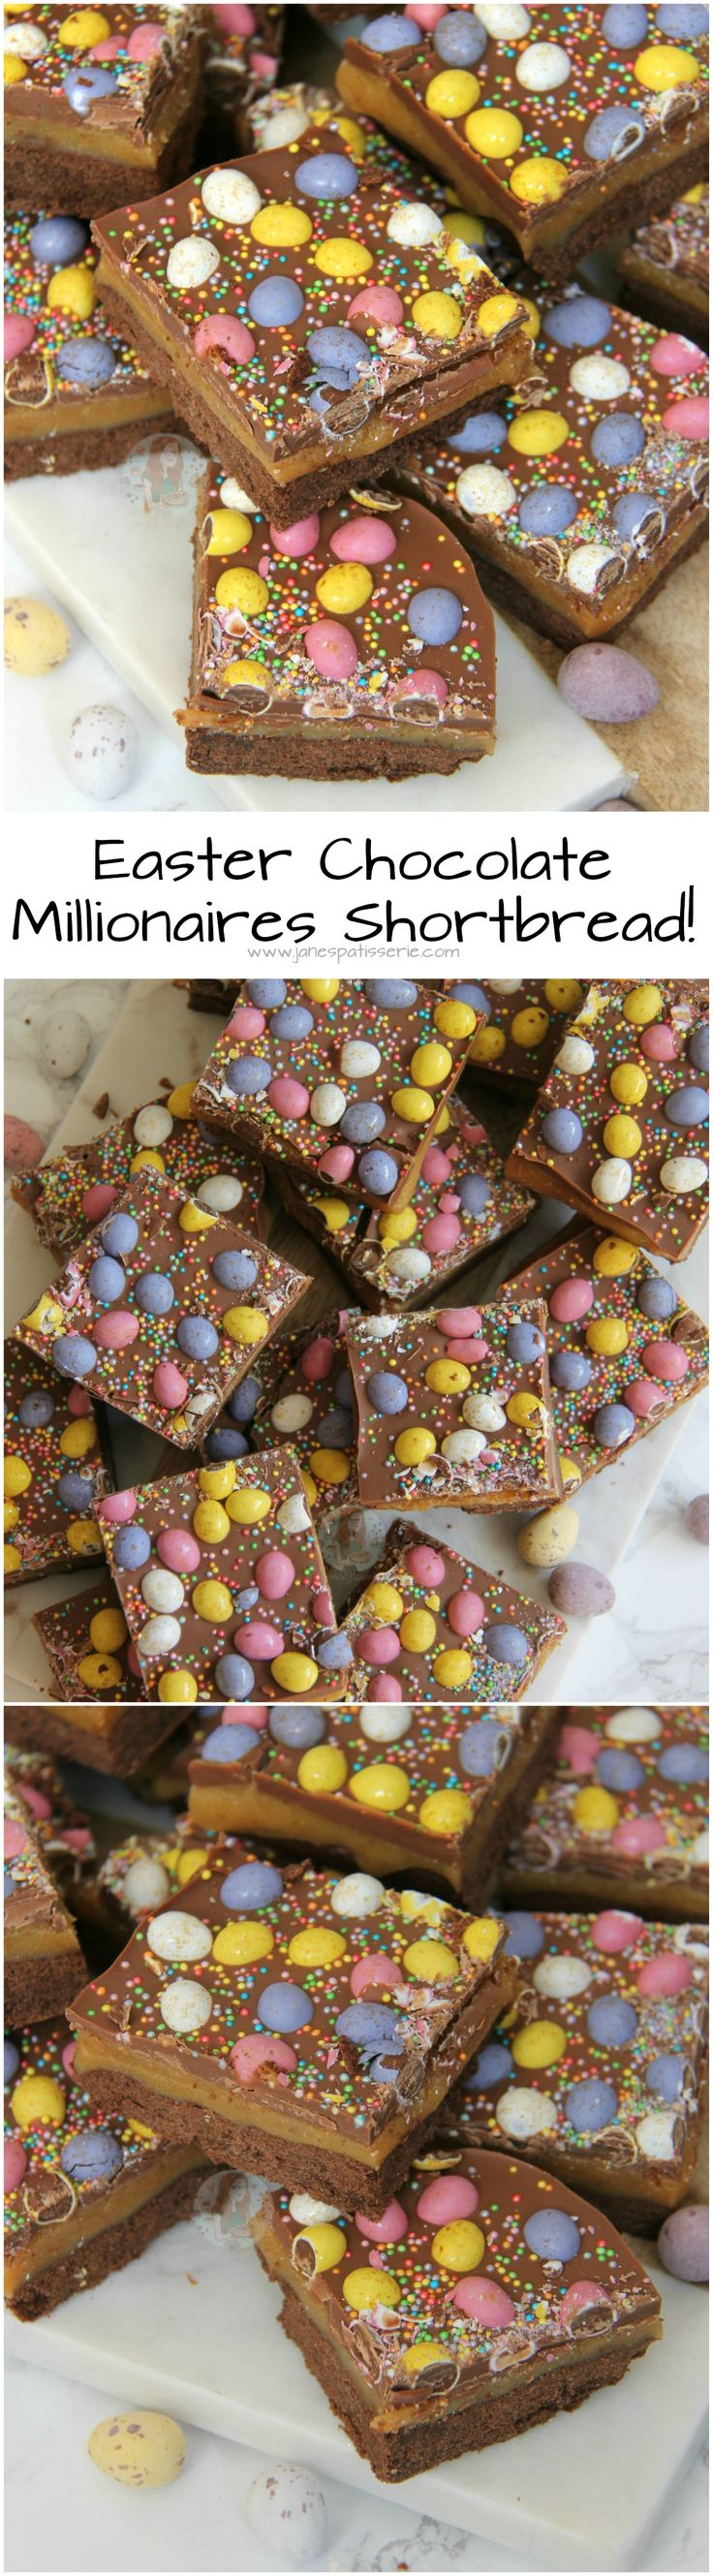 Easter Chocolate Millionaires Shortbread! ❤️ Buttery Chocolate Shortbread, Homemade Caramel, Milk Chocolate, and Micro Mini Eggs make the most delicious Easter Chocolate Millionaires Shortbread!